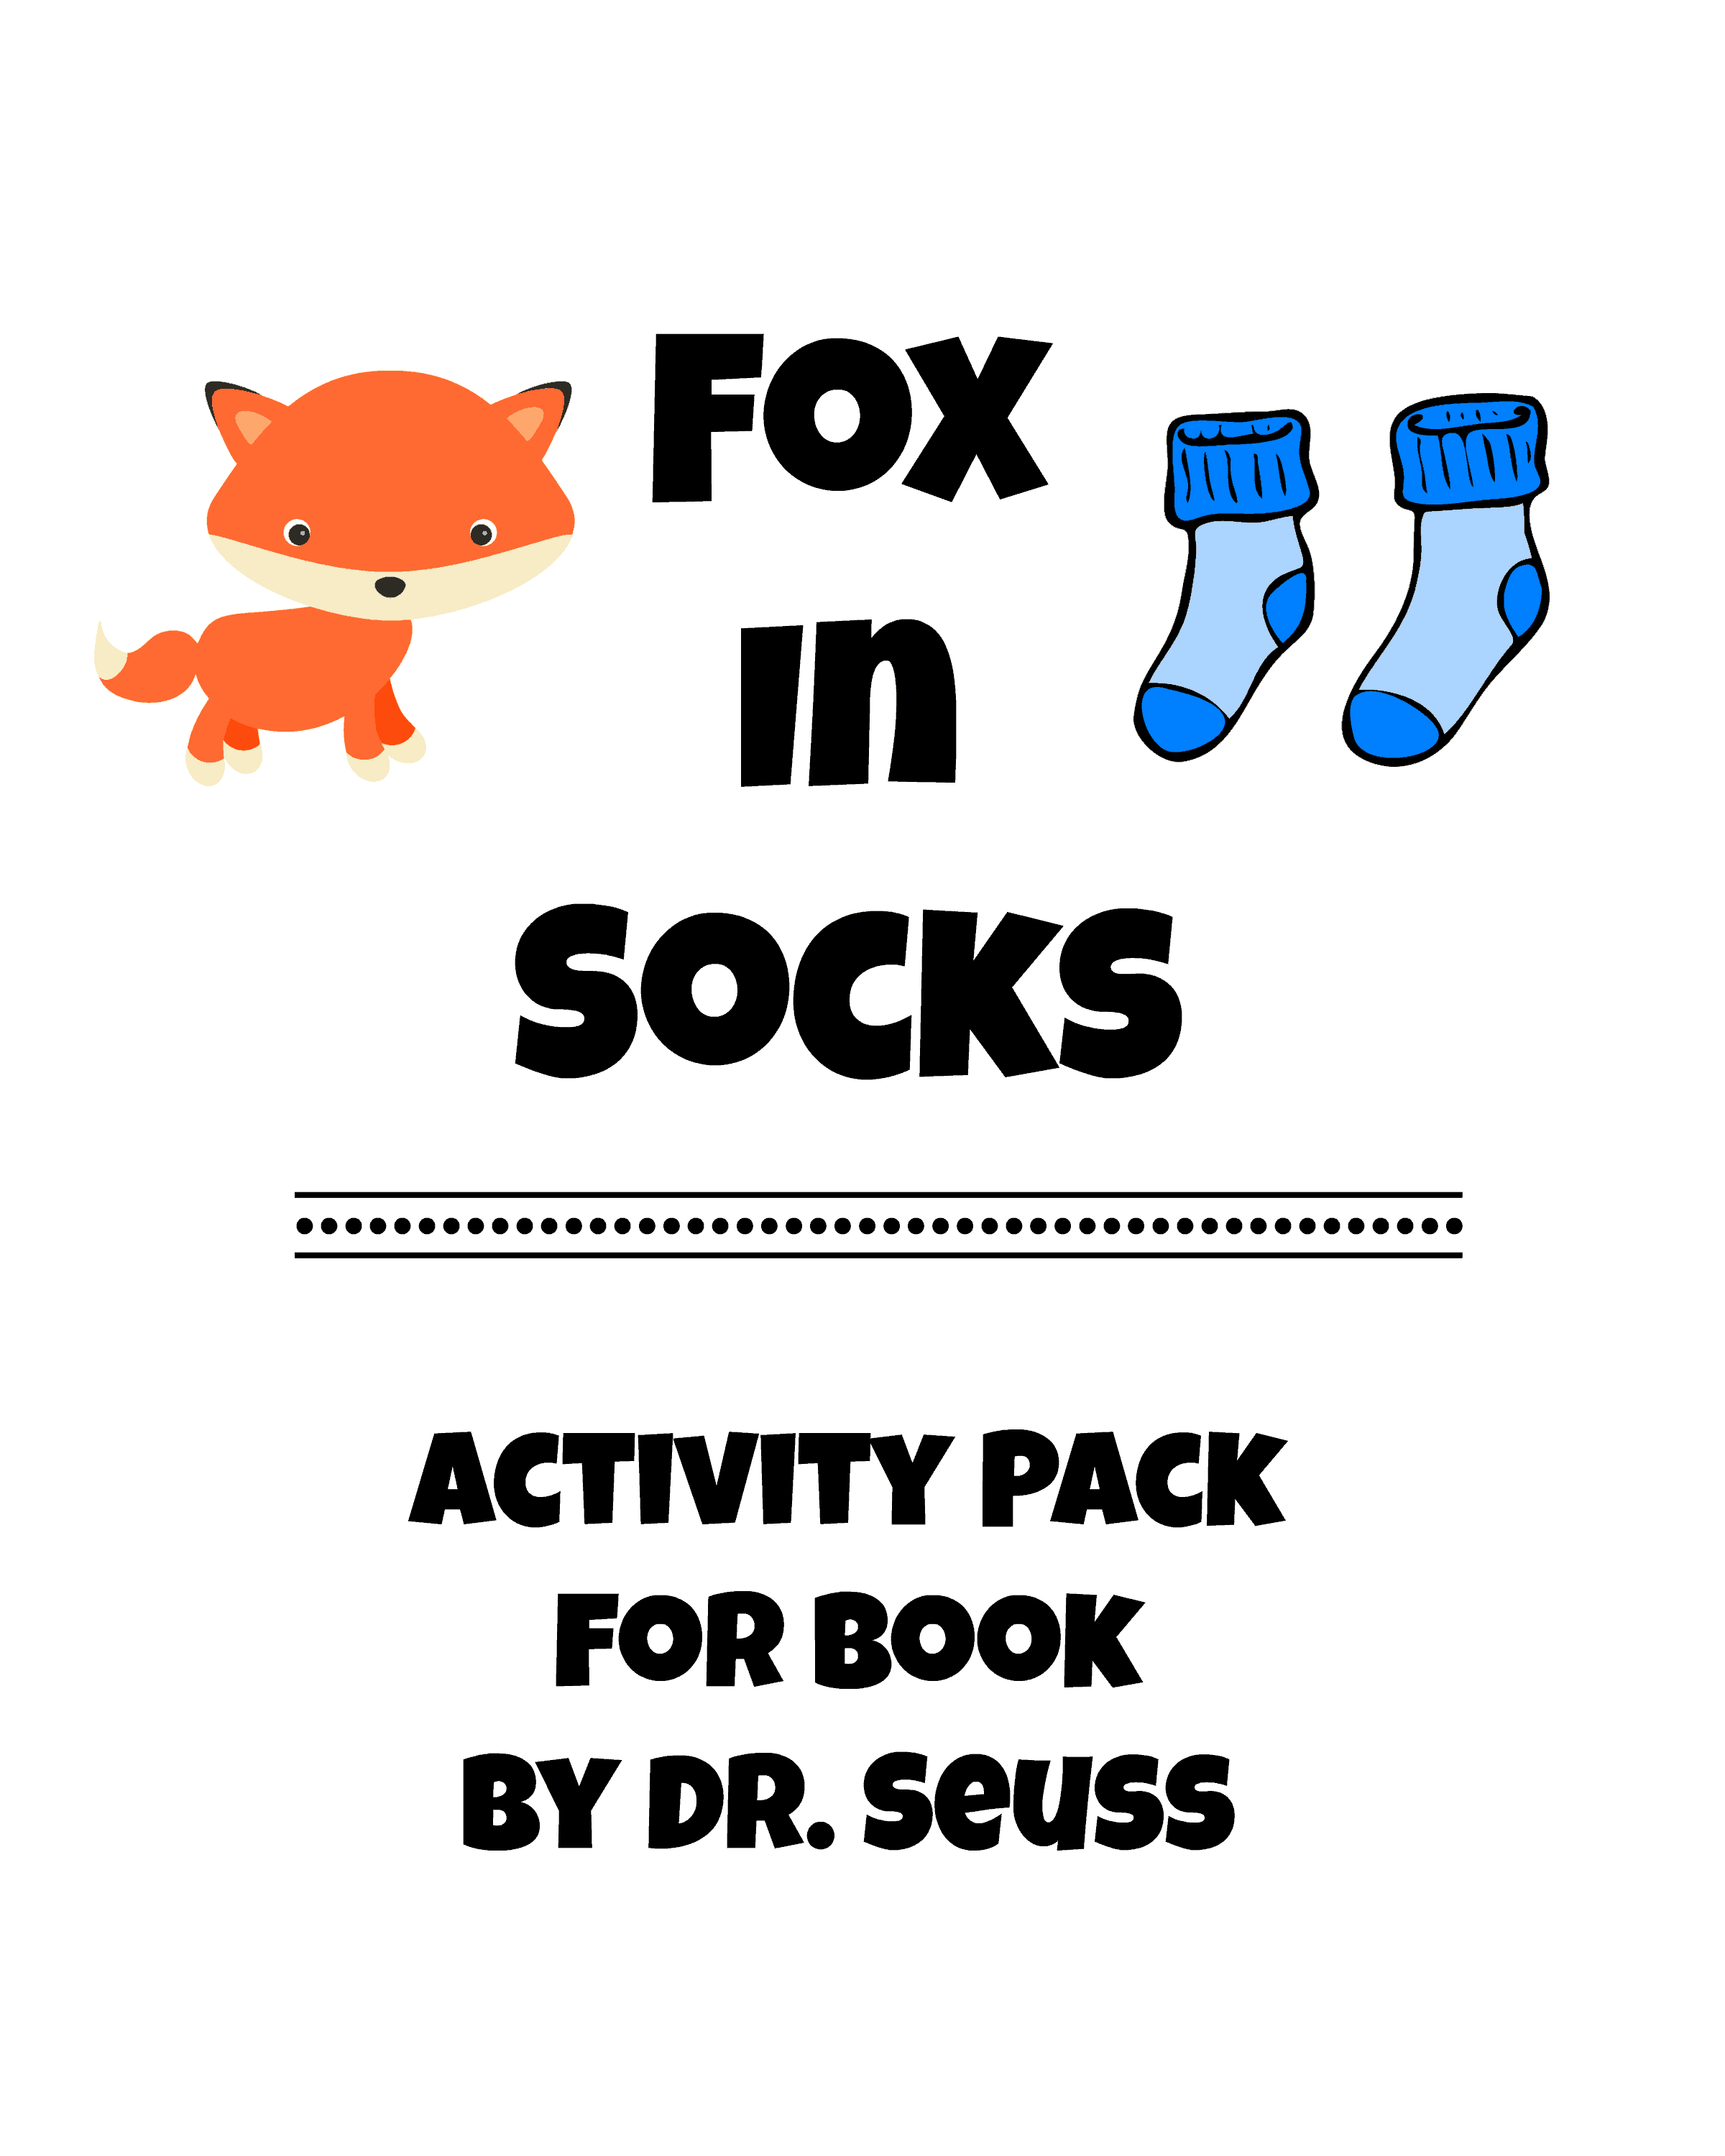 picture regarding Fox in Socks Printable called Fox Within Socks-Dr. Seuss Recreation Pack - Rock Your Homeschool